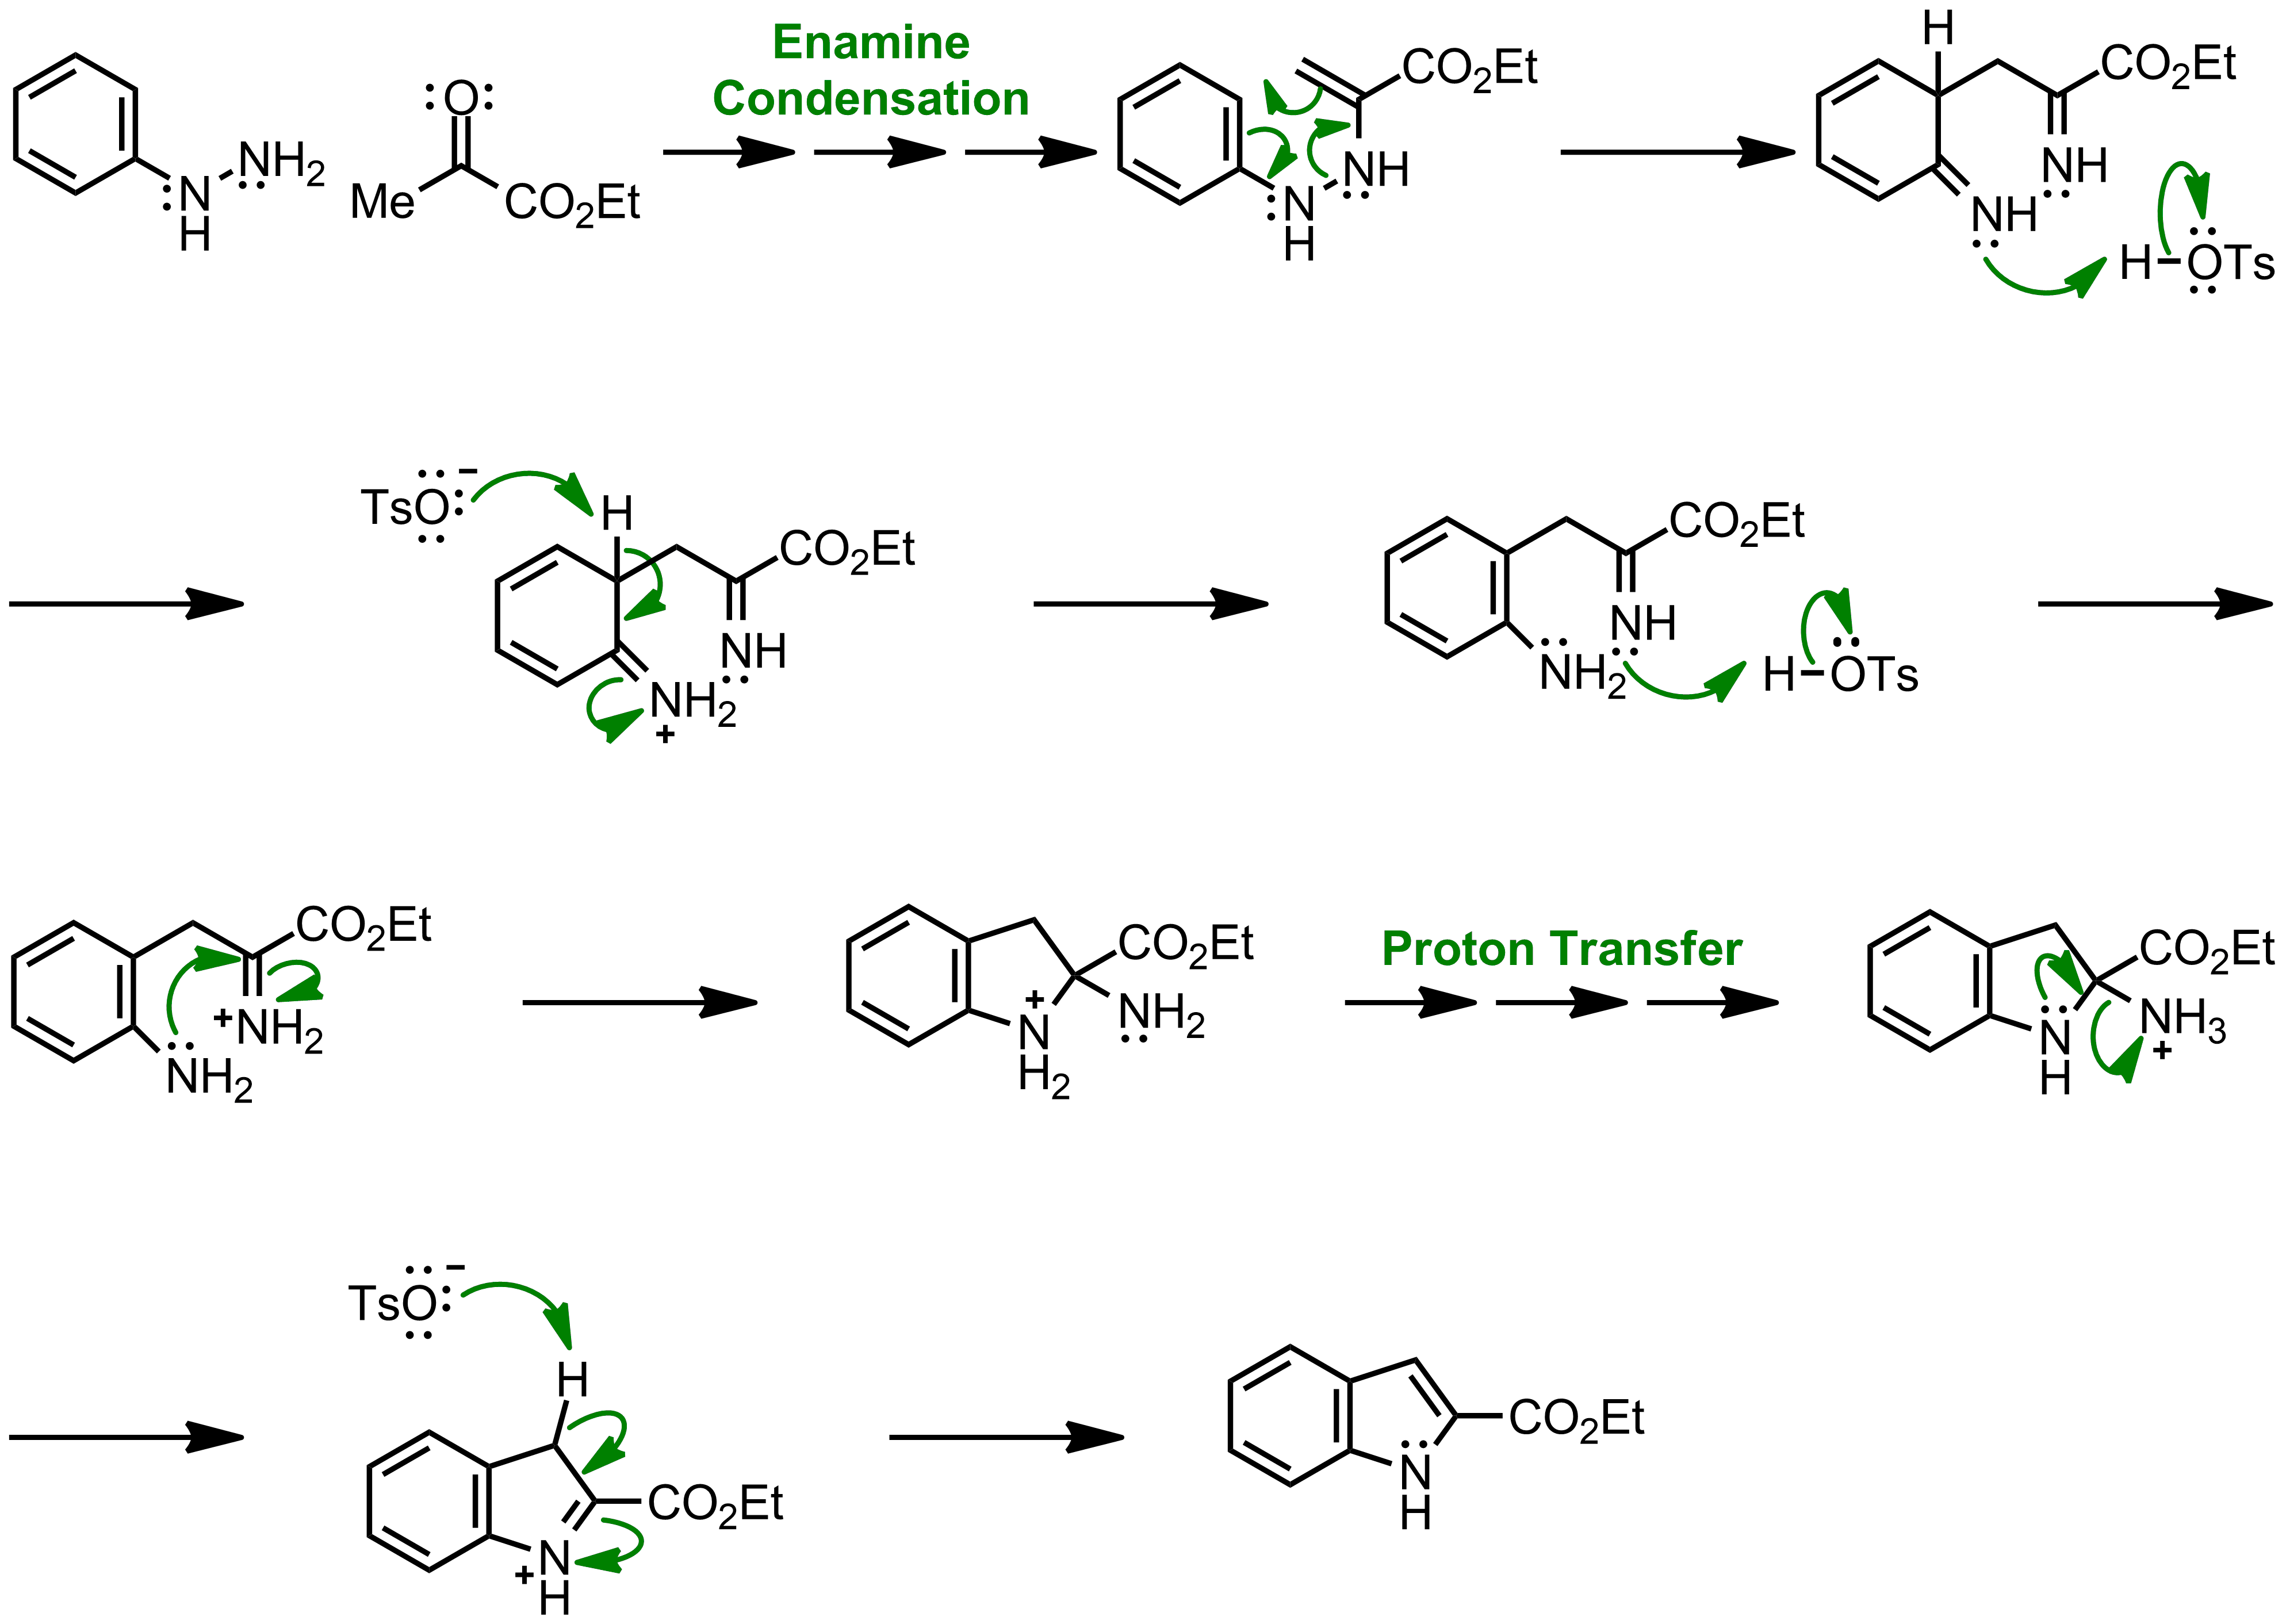 Mechanism of the Fischer Indole Synthesis